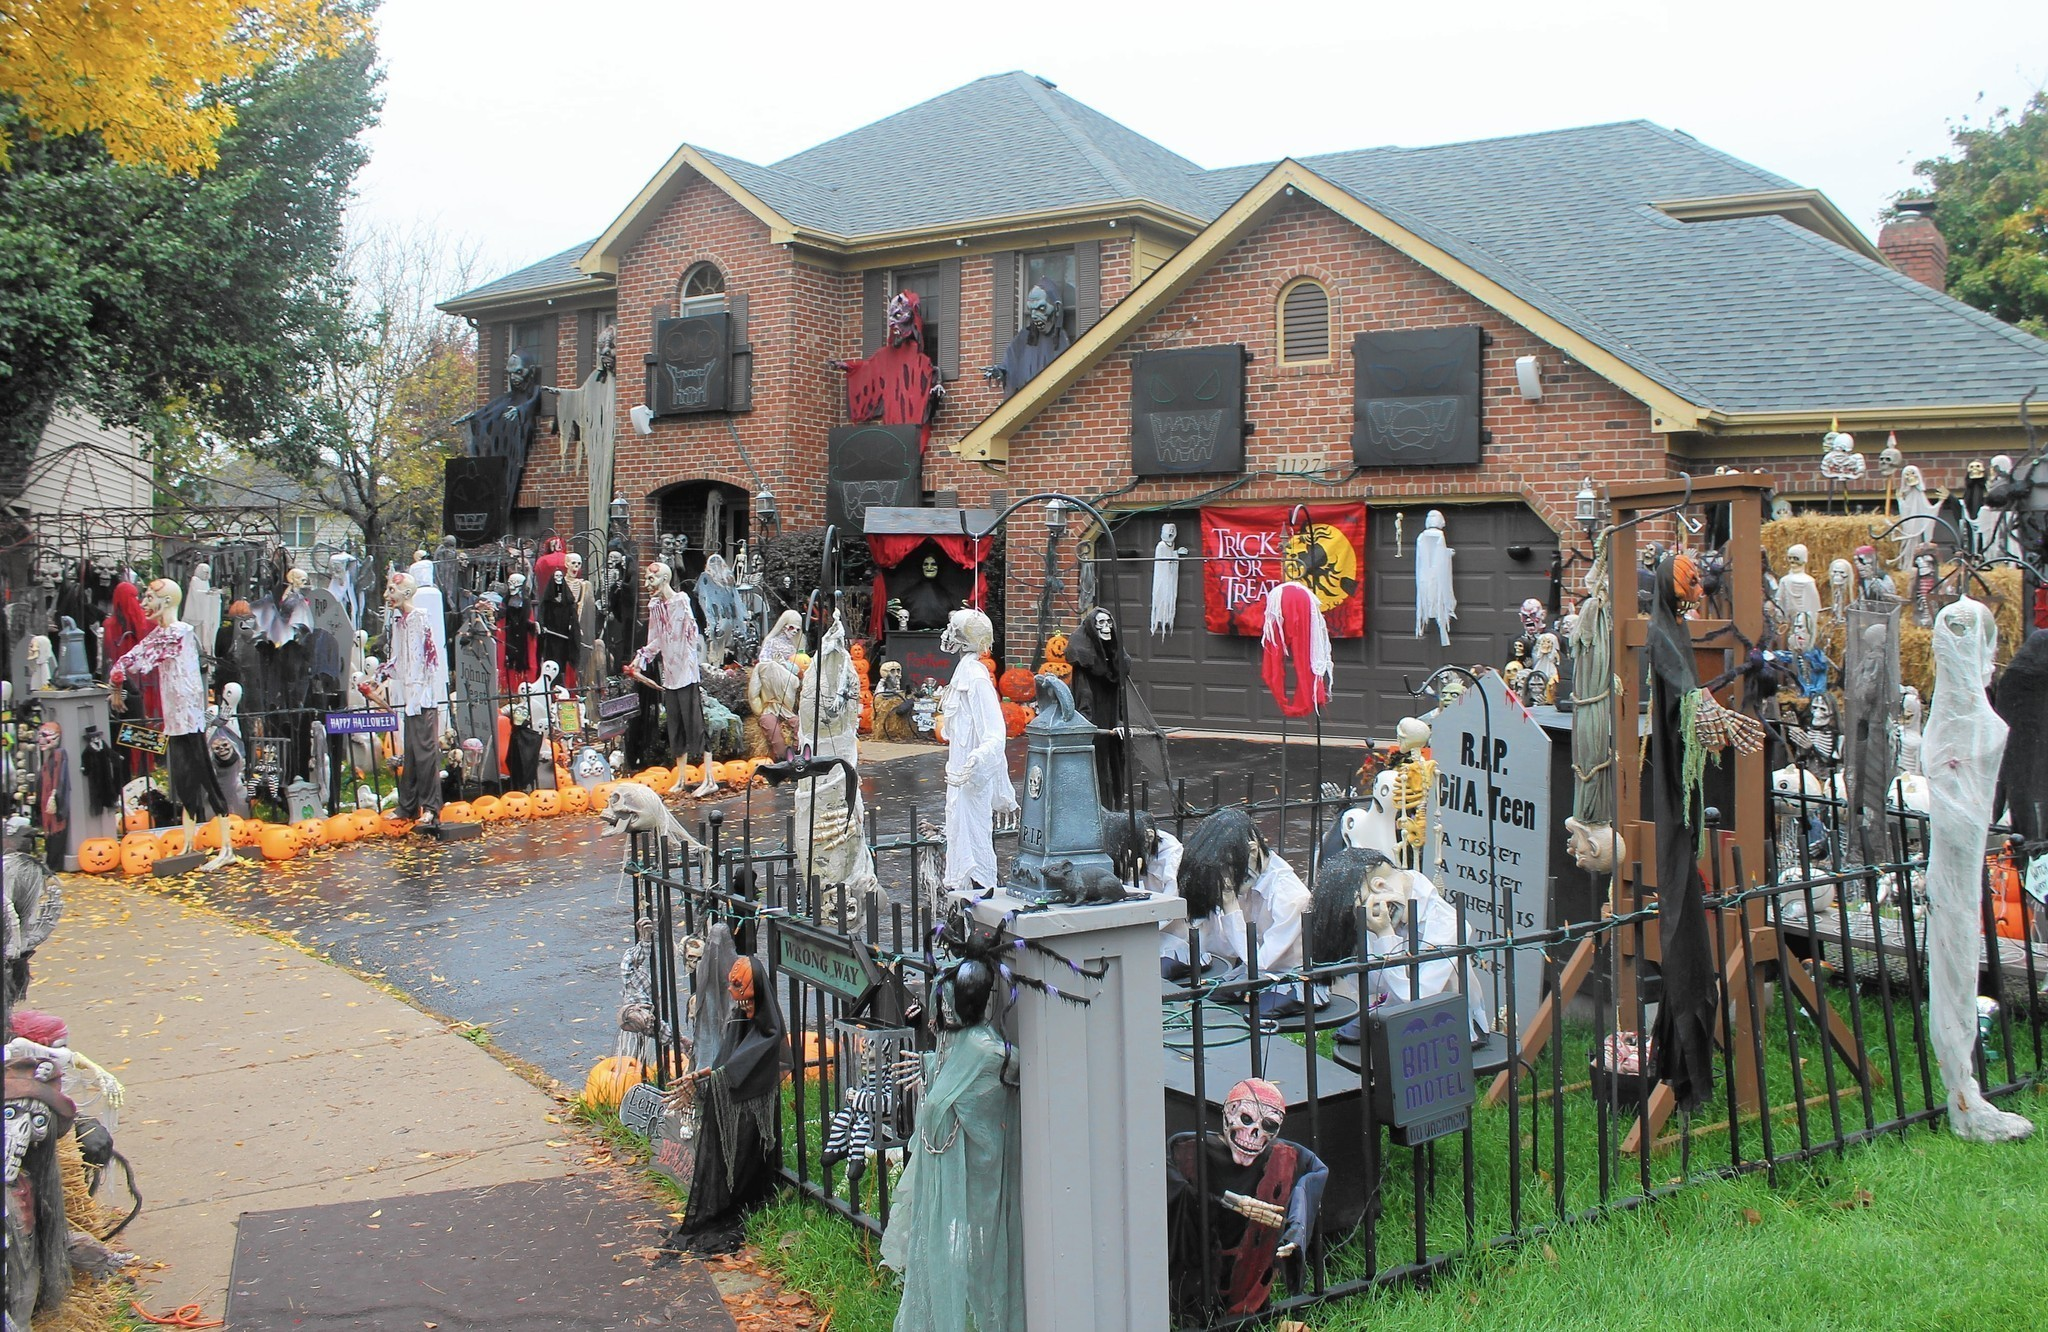 Halloween Home Design Ideas: Petition Supporting Halloween House Gets Attention From